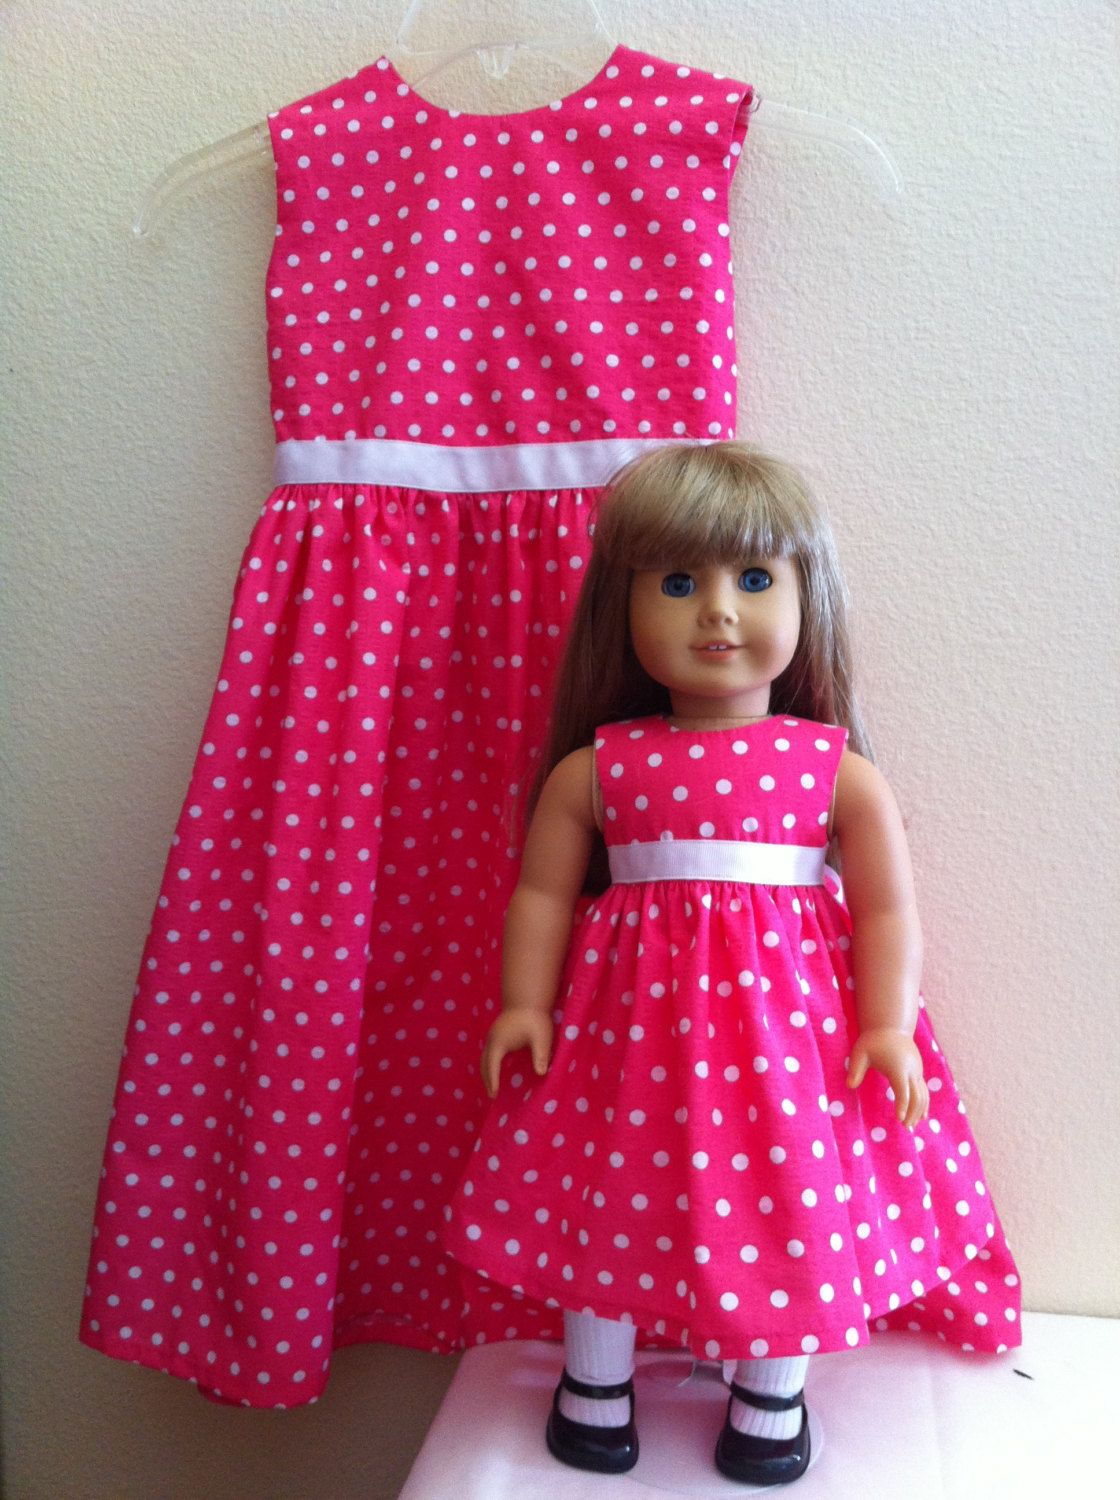 Matching Polka Dot Dresses for Child and American Girl